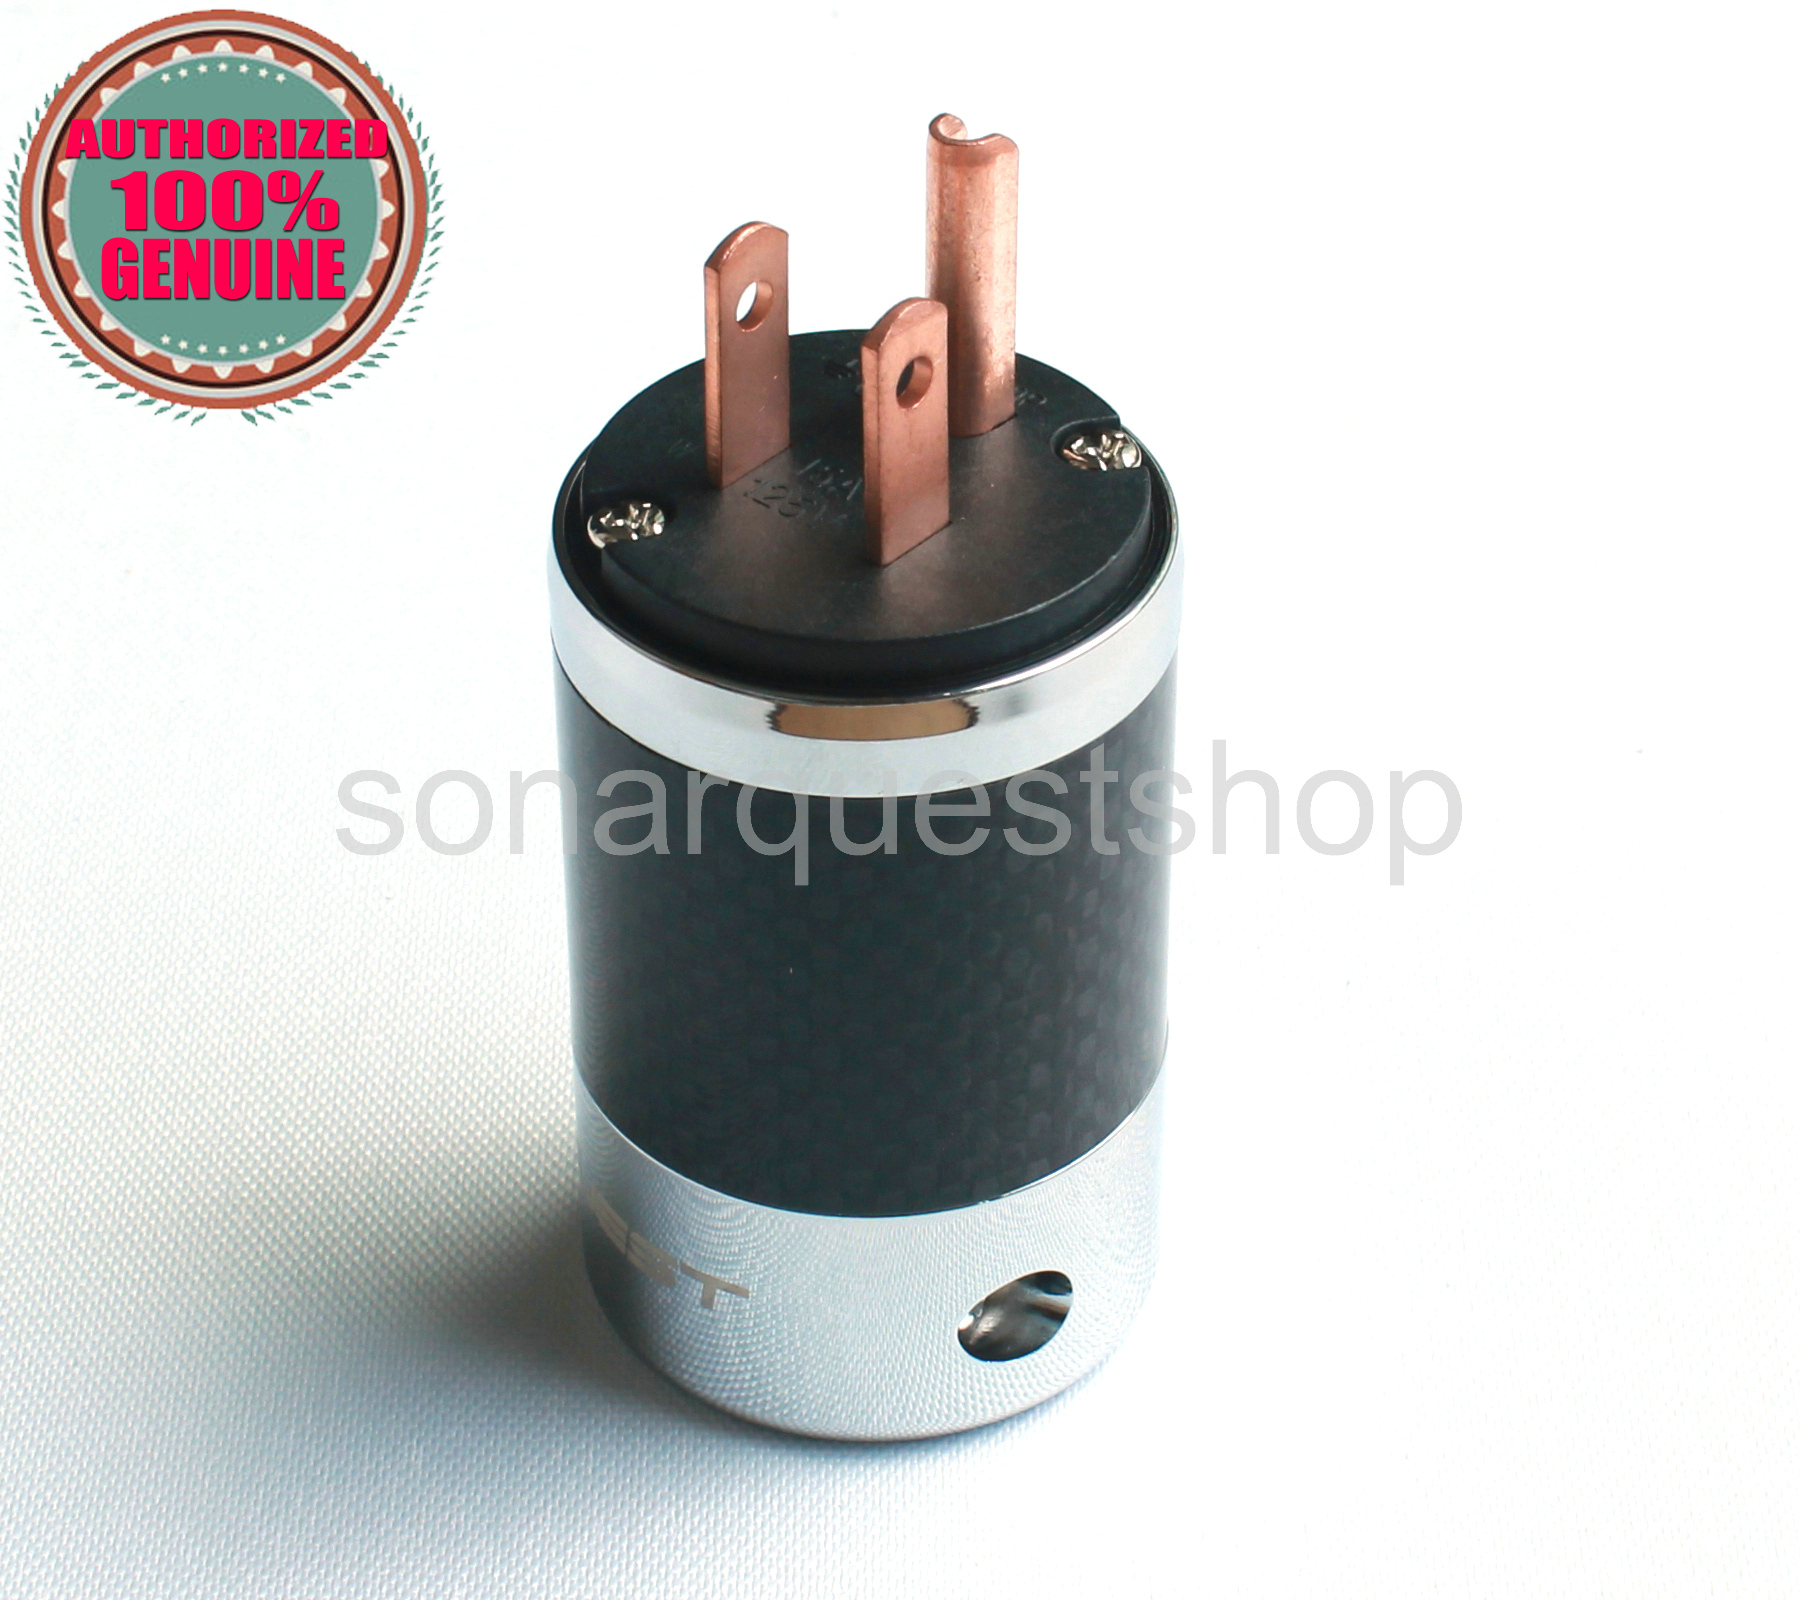 SONARQUEST SQ-P39(C)B US Red Copper BK Carbon fiber Power Plug